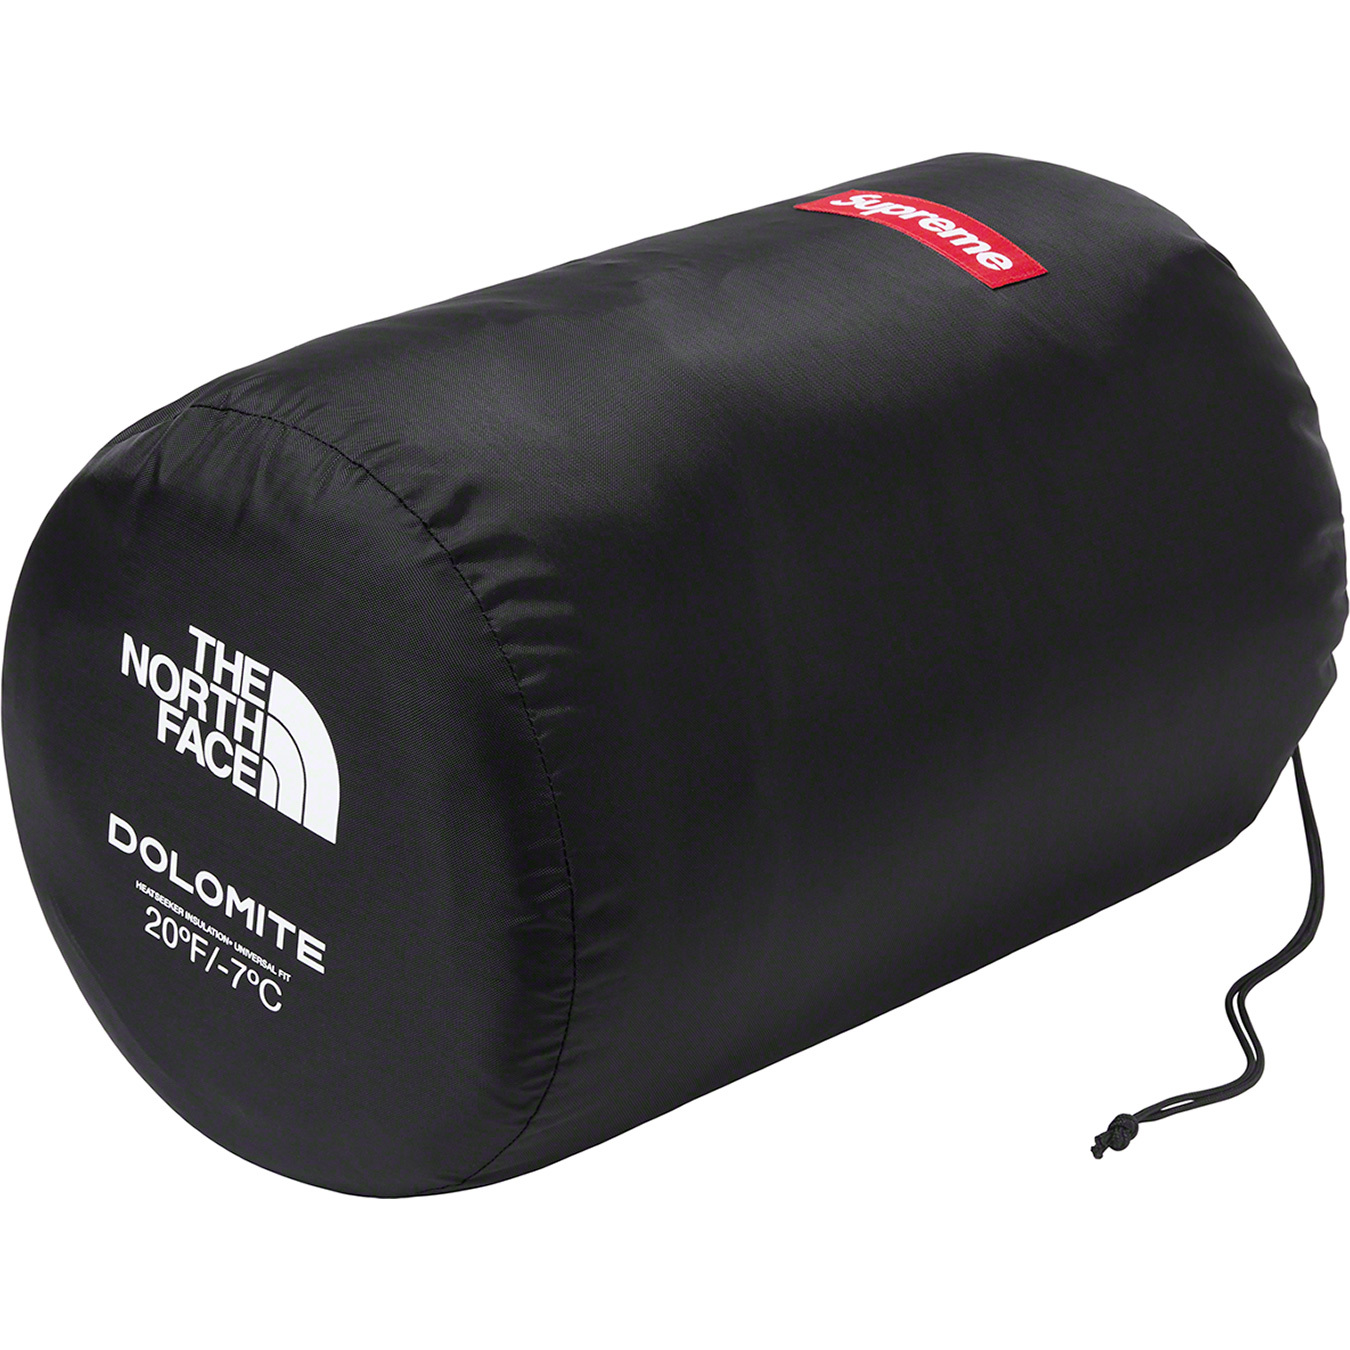 supreme-the-north-face-20aw-20fw-s-logo-collaboration-release-20201031-week10-dolomite-sleeping-bag